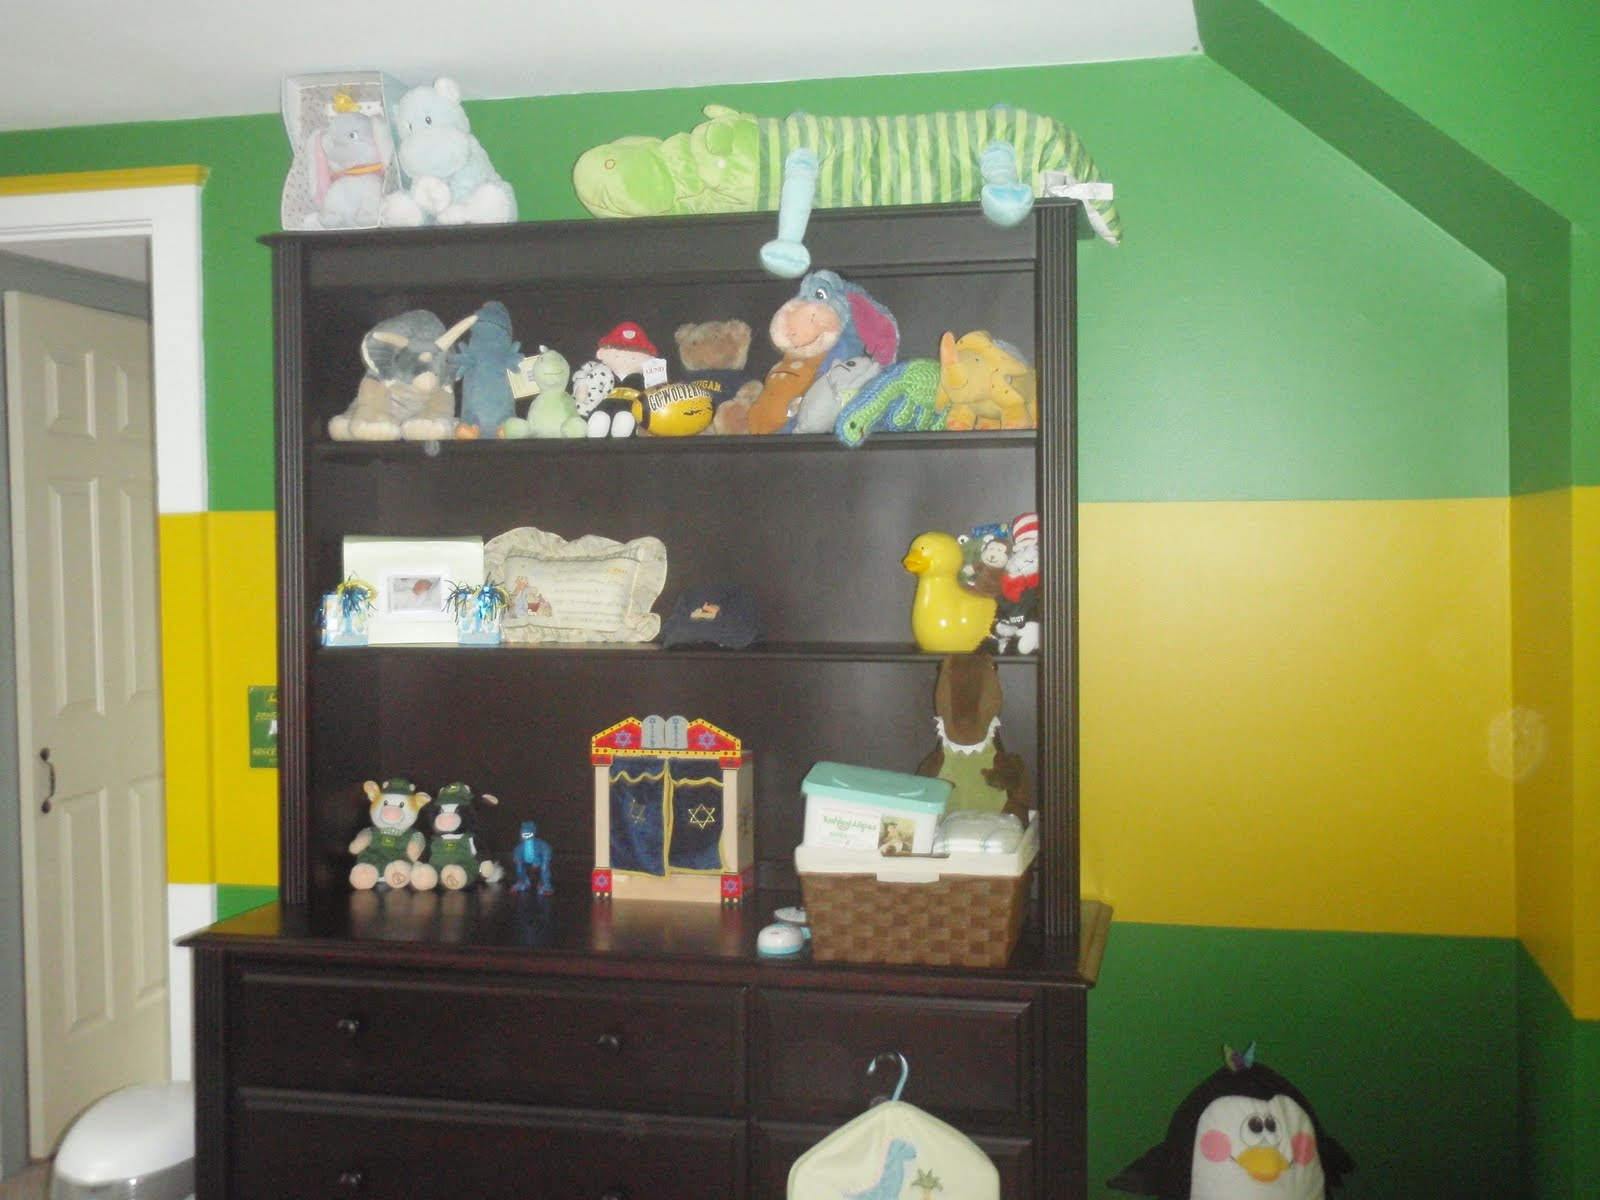 the gruendel family: my new john deere room